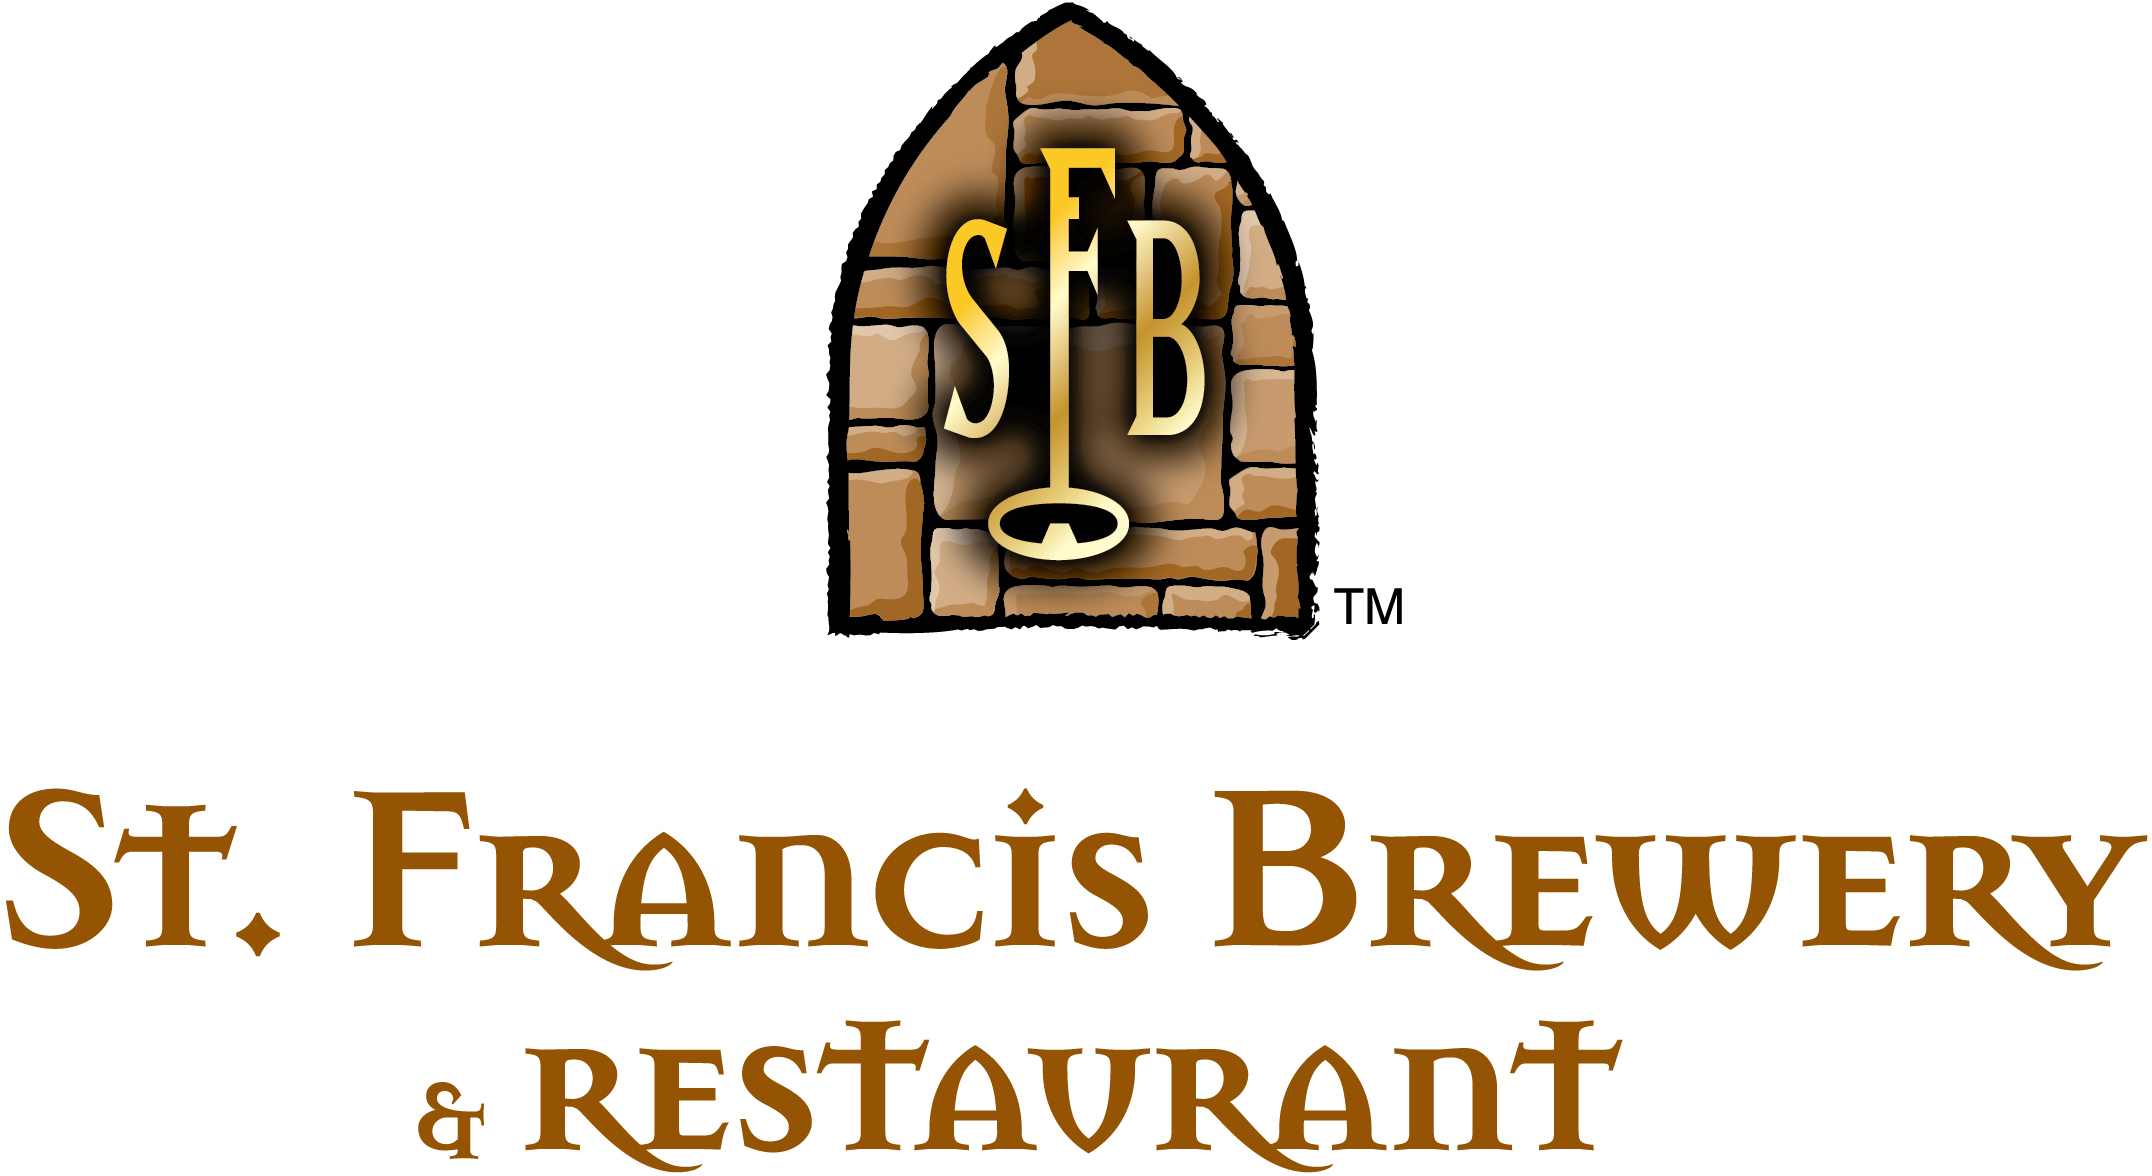 St. Francis Brewery and Restaurant